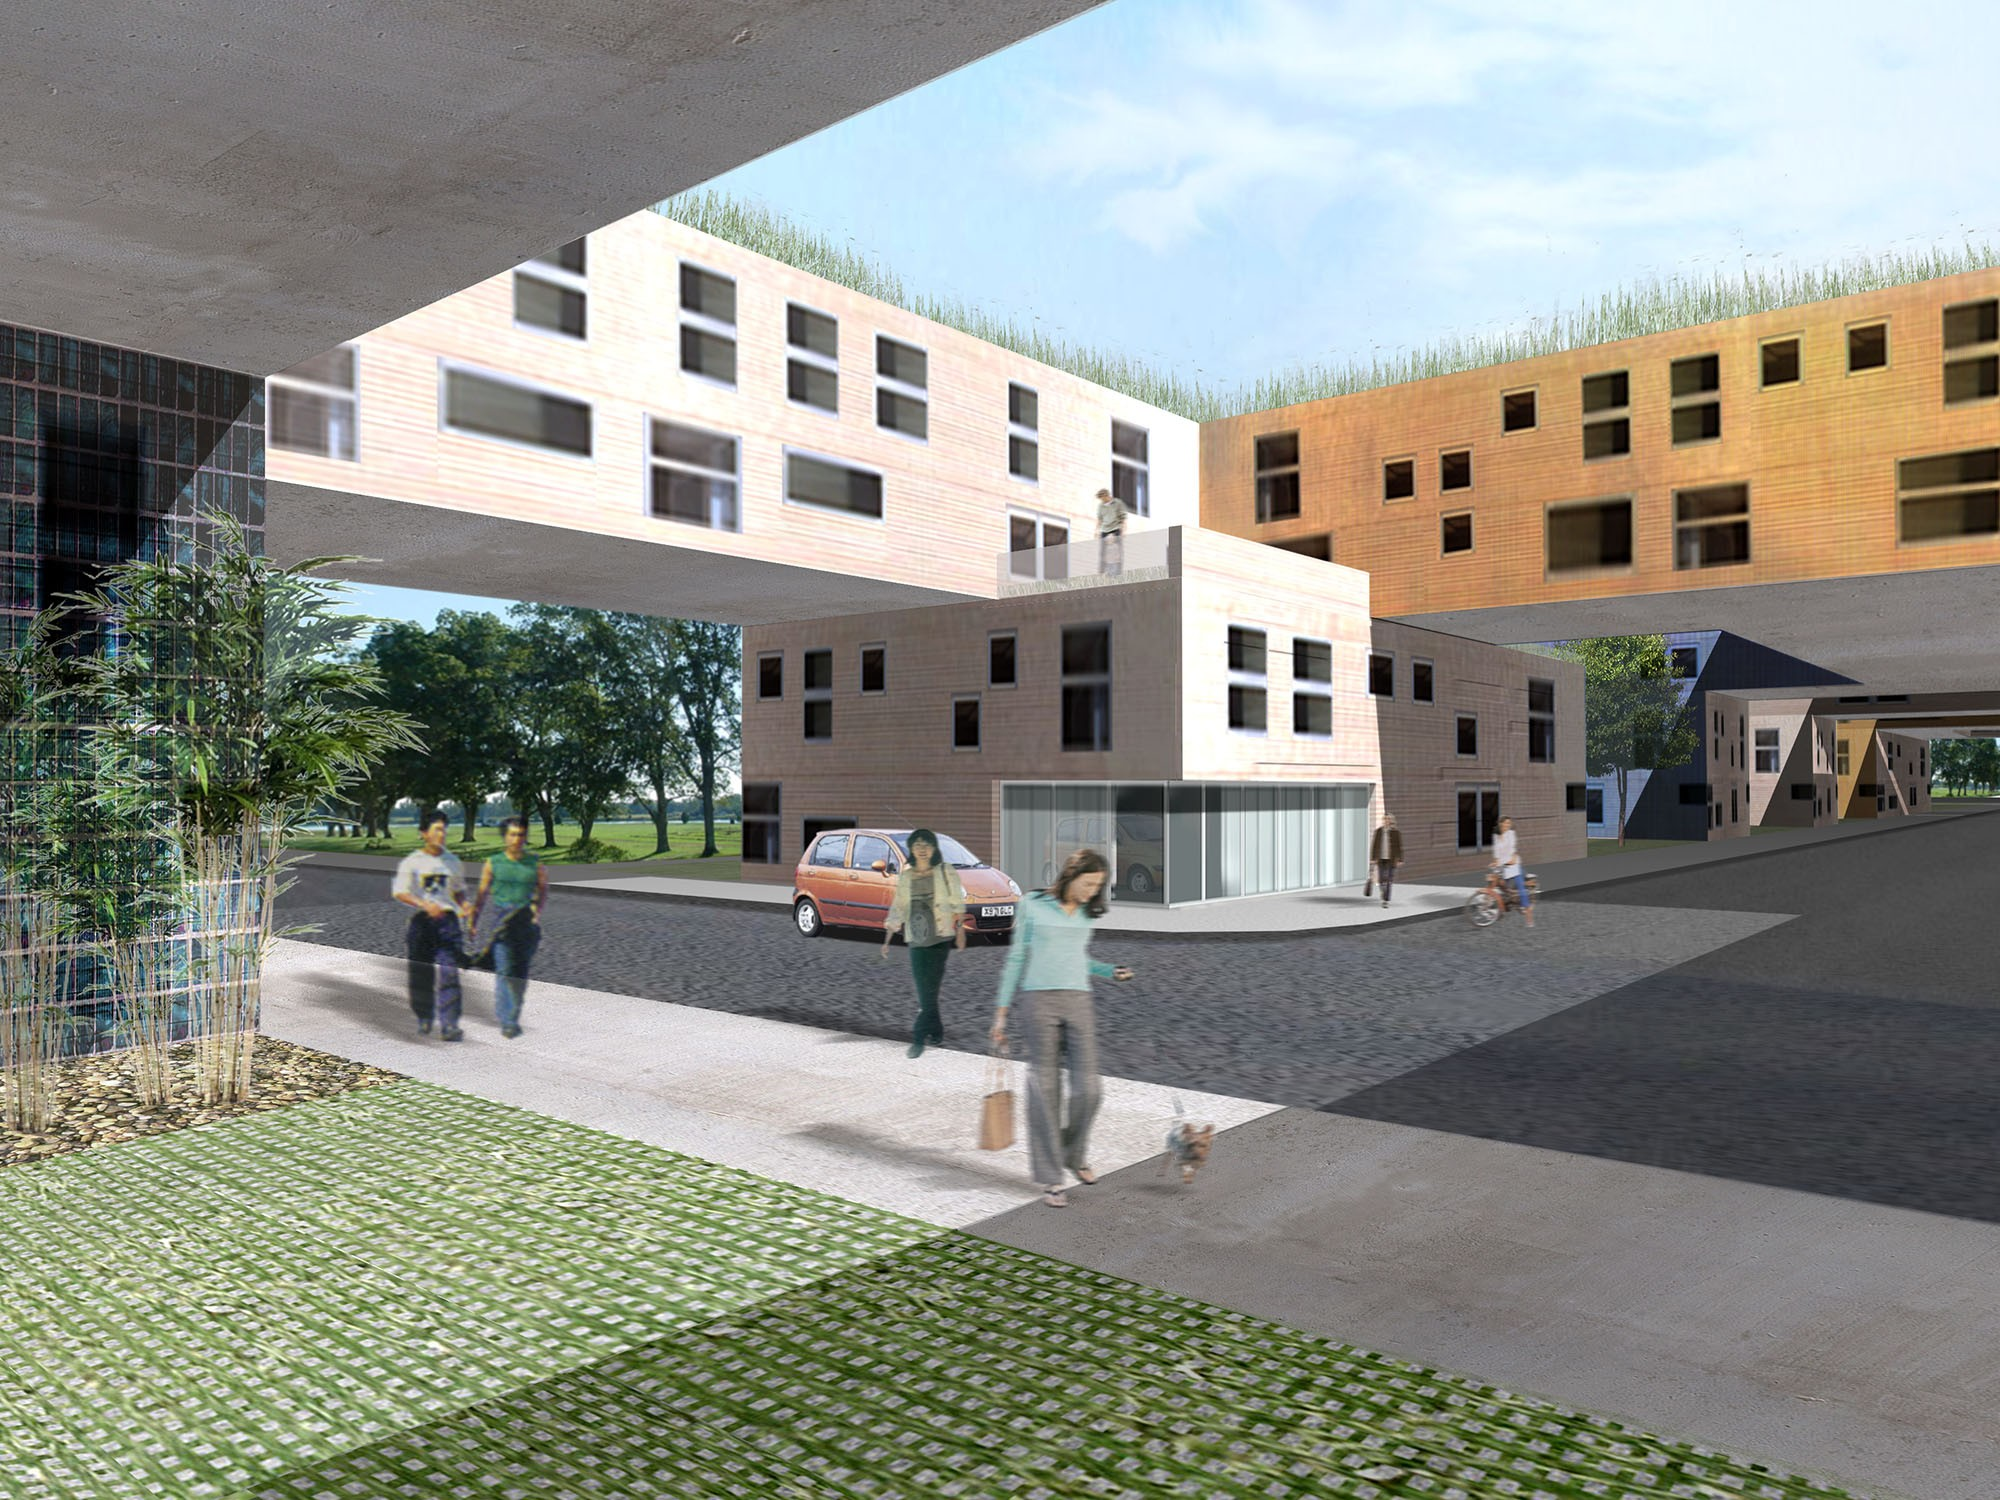 https://stevenholl.sfo2.digitaloceanspaces.com/uploads/projects/project-images/Street view in 4-story residential area.jpg